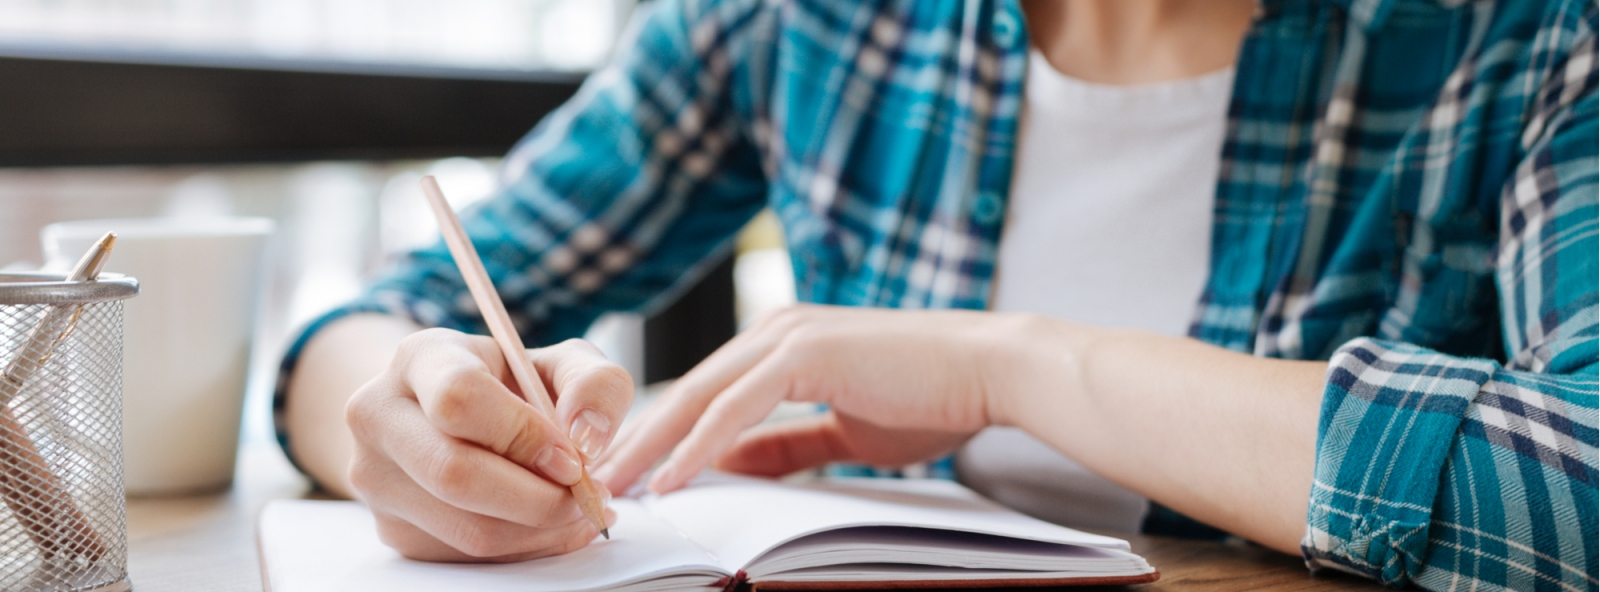 How to Improve Your Academic Writing | Essay Writing Service UK